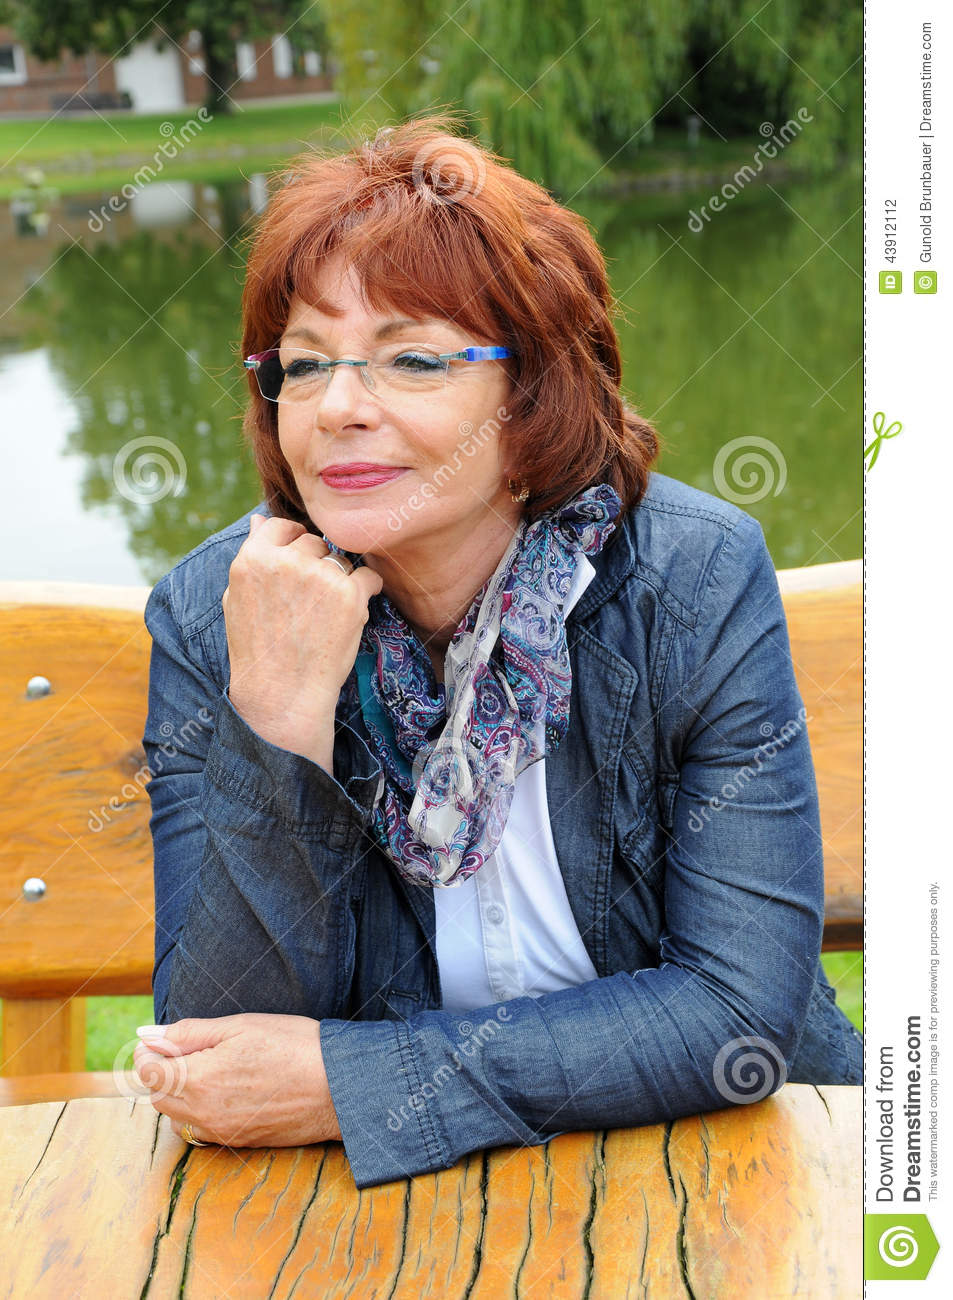 Good looking red haired woman